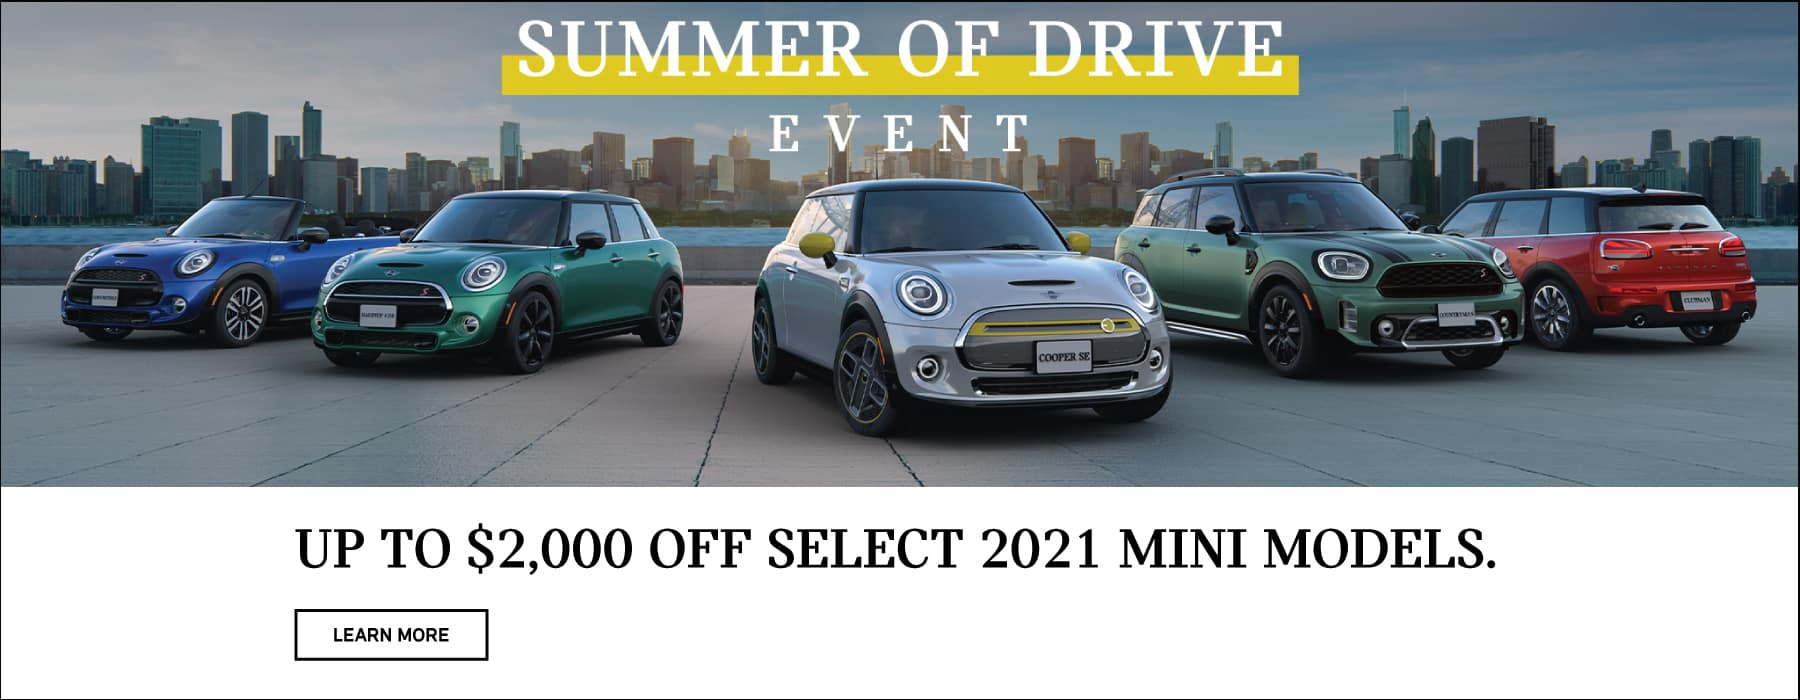 Up to $2,00 Off select 2021 models